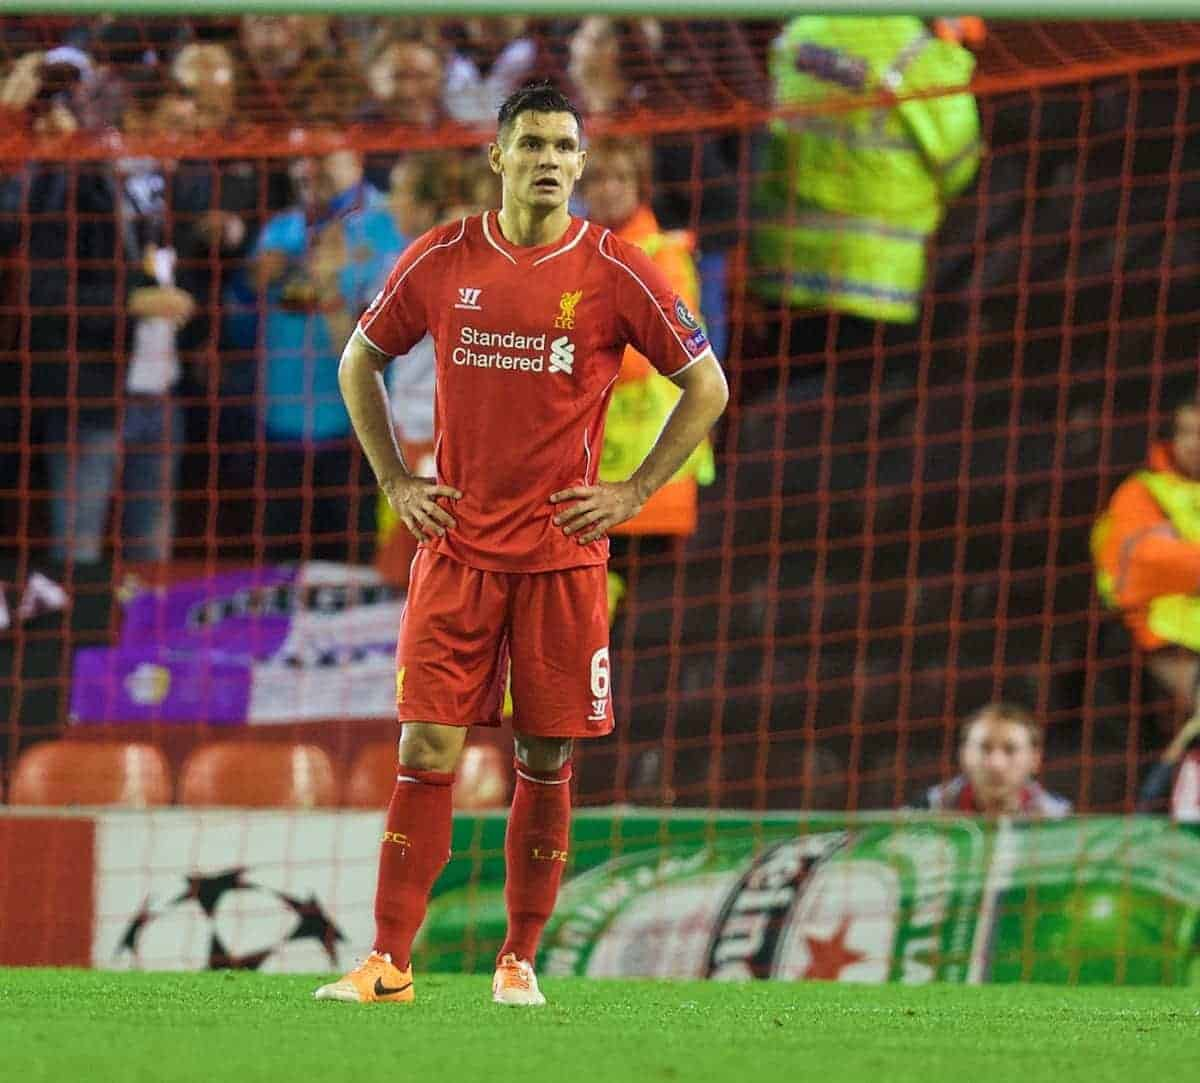 LIVERPOOL, ENGLAND - Wednesday, October 22, 2014: Liverpool's Dejan Lovren looks dejected as Real Madrid CF score the third goal during the UEFA Champions League Group B match at Anfield. (Pic by David Rawcliffe/Propaganda)